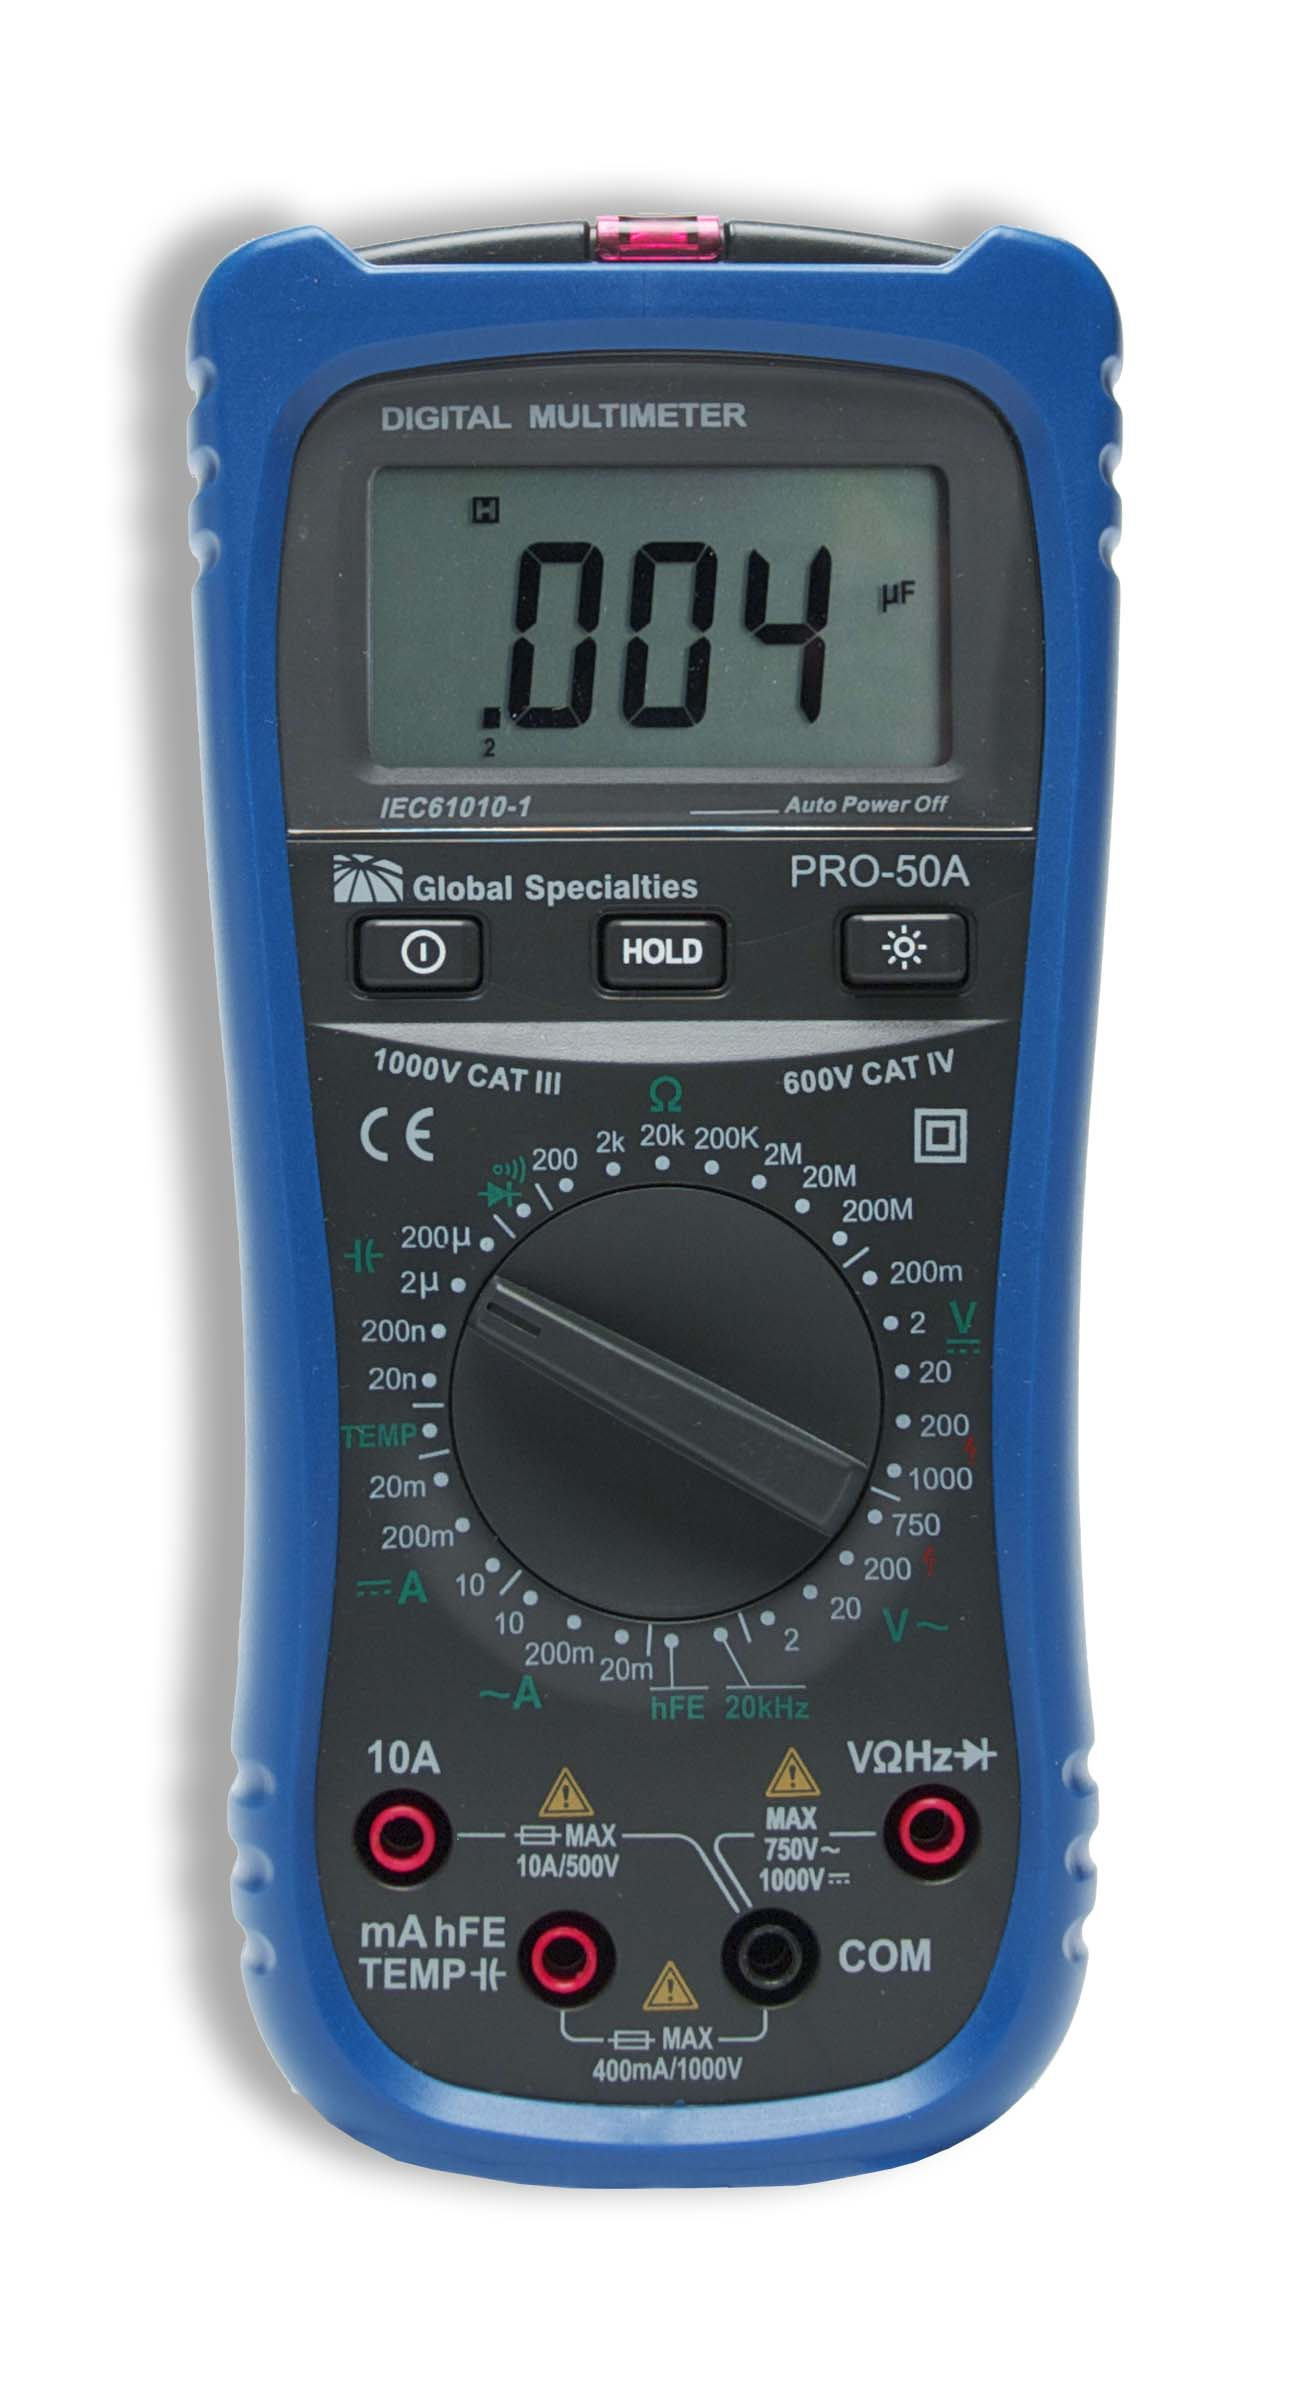 hight resolution of global specialties pro 50a handheld digital multimeter discontinued photo